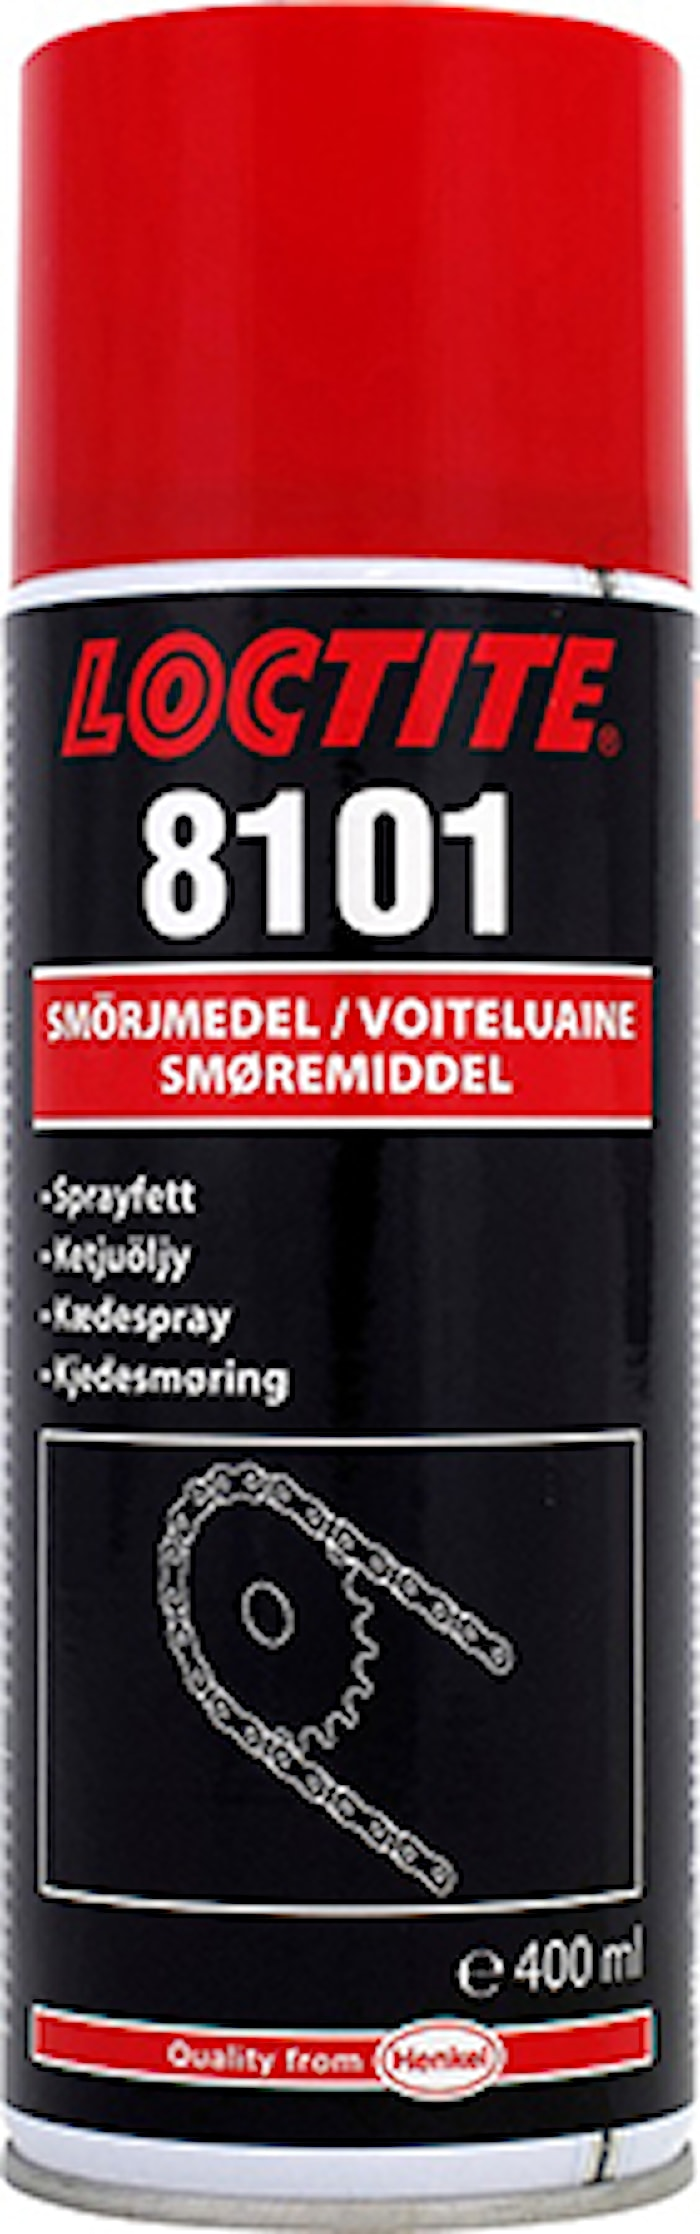 Loctite 8101 400ml spray